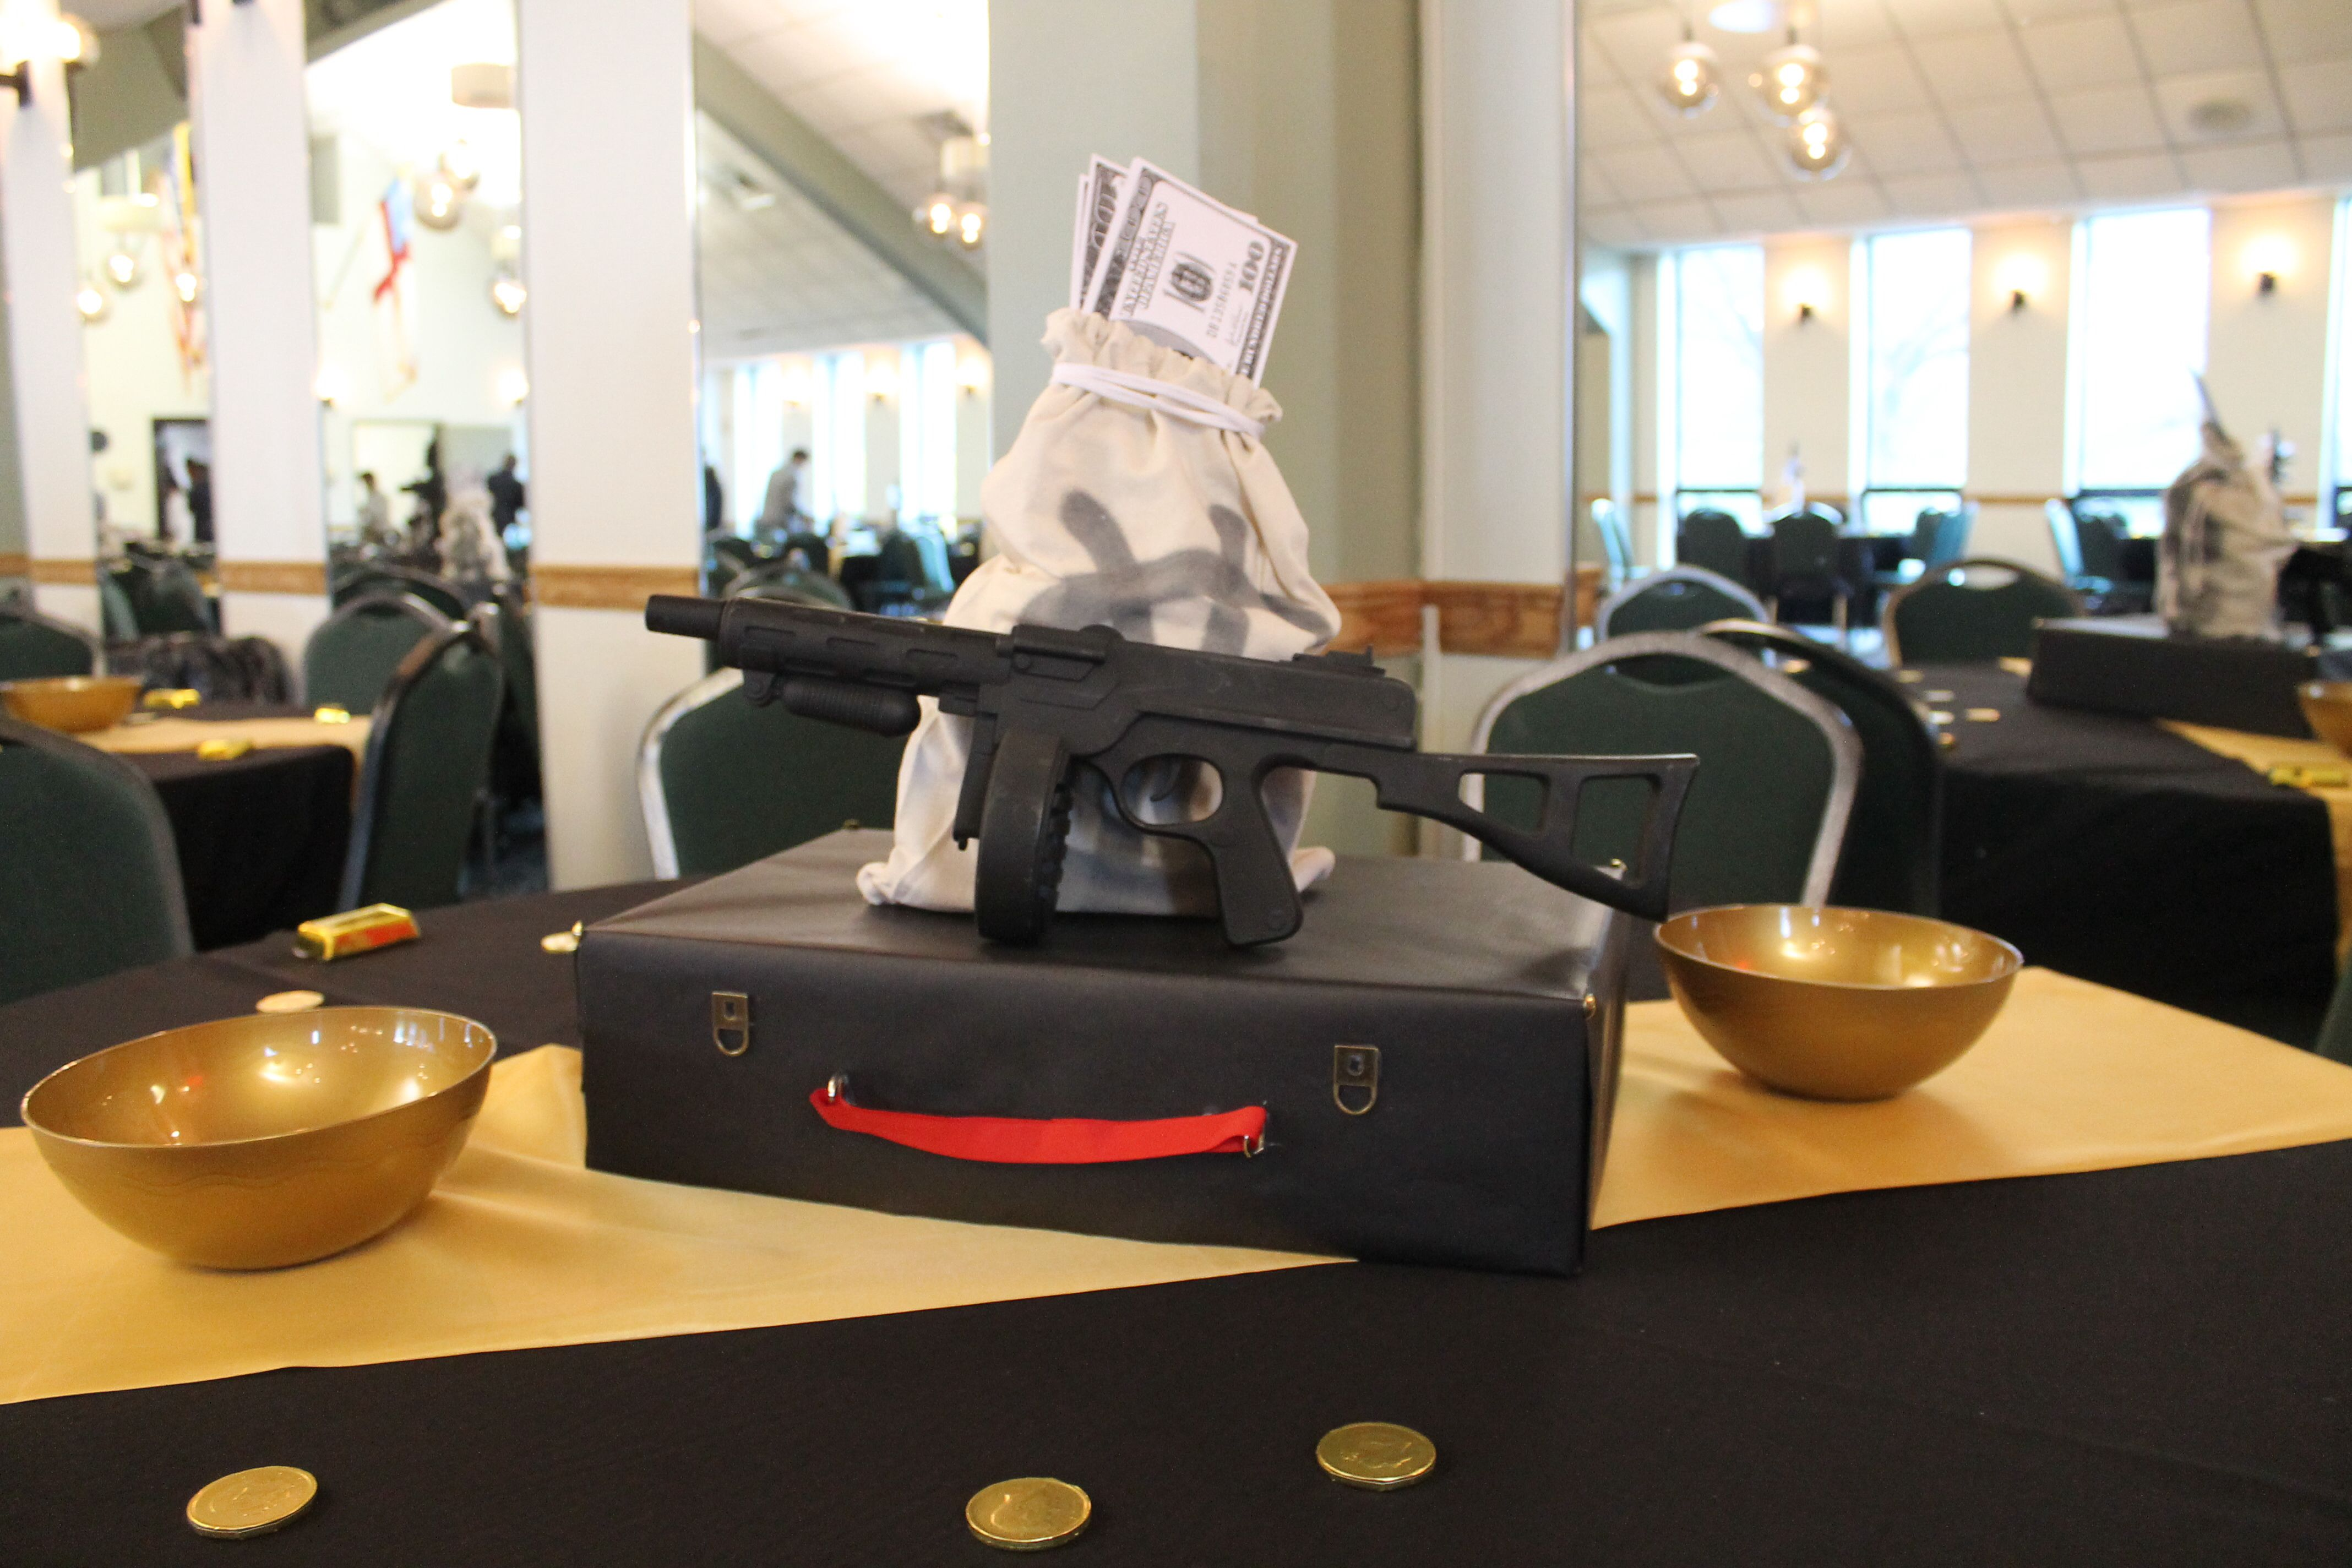 Mobster Gangster Themed Centerpieces Tommy Gun Money Bag Briefcase MC Creations